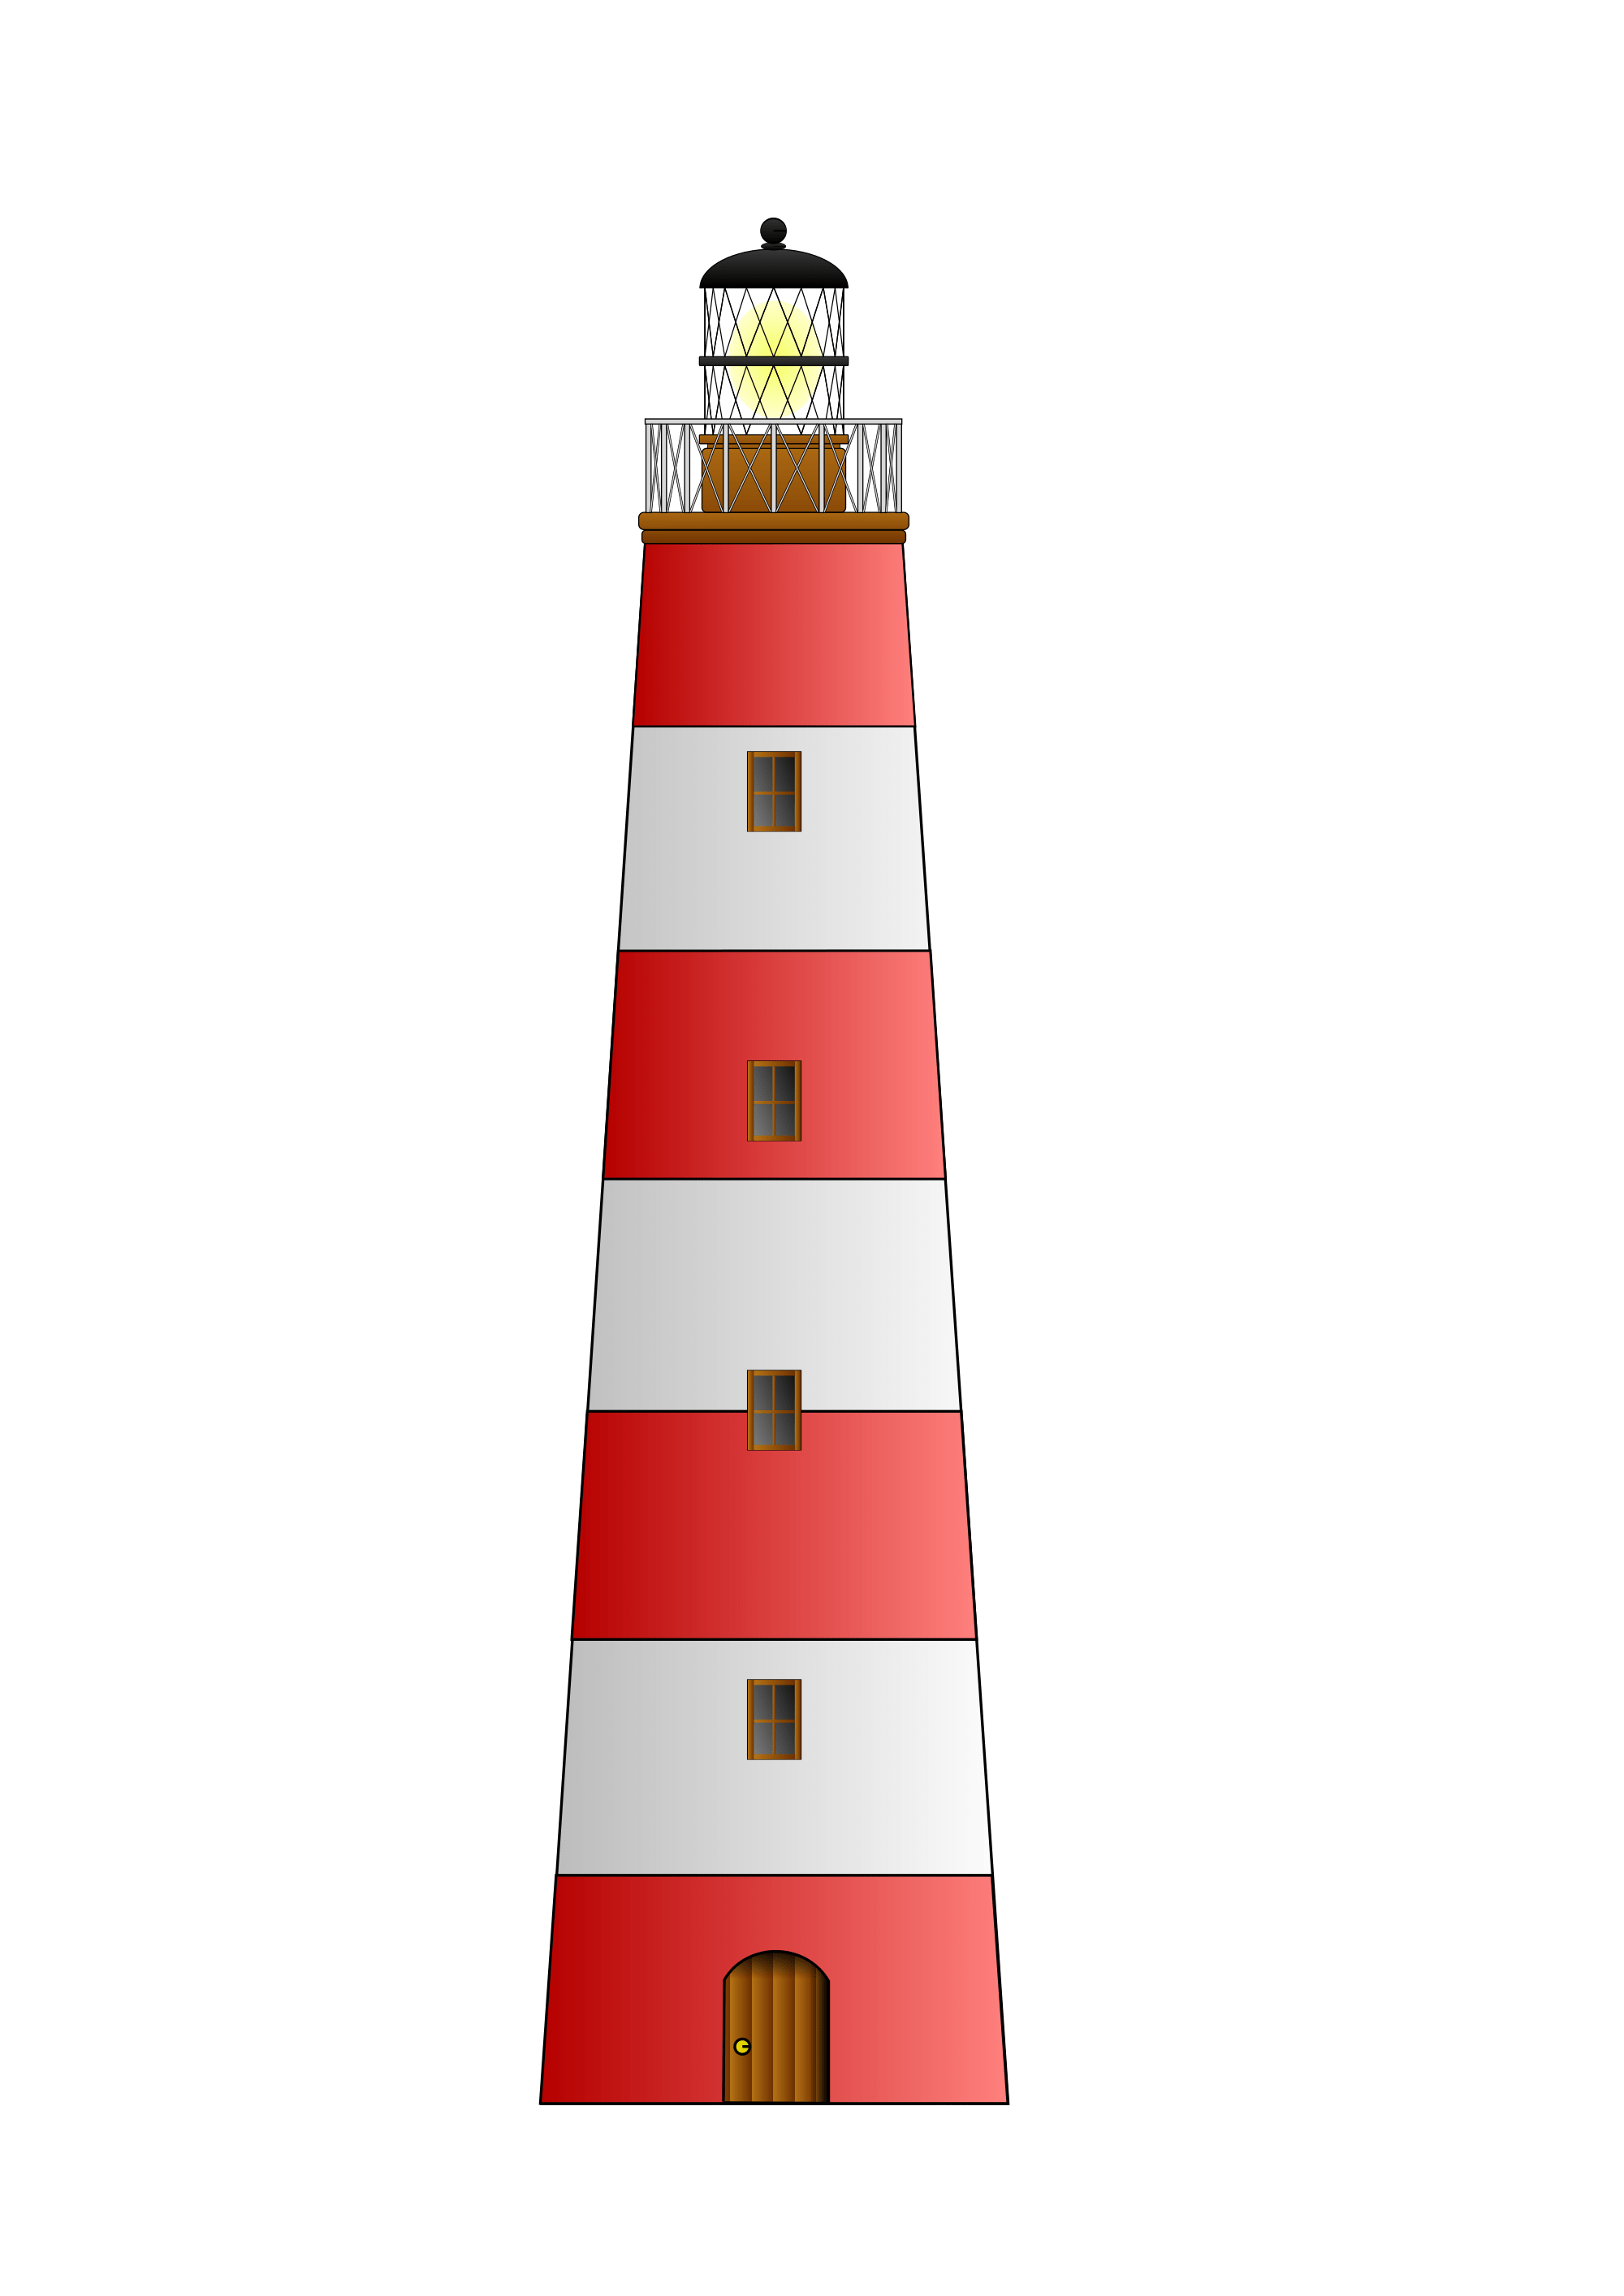 red white lighthouse clipart transparent png stickpng rh stickpng com lighthouse clip art black and white lighthouse clip art black and white free